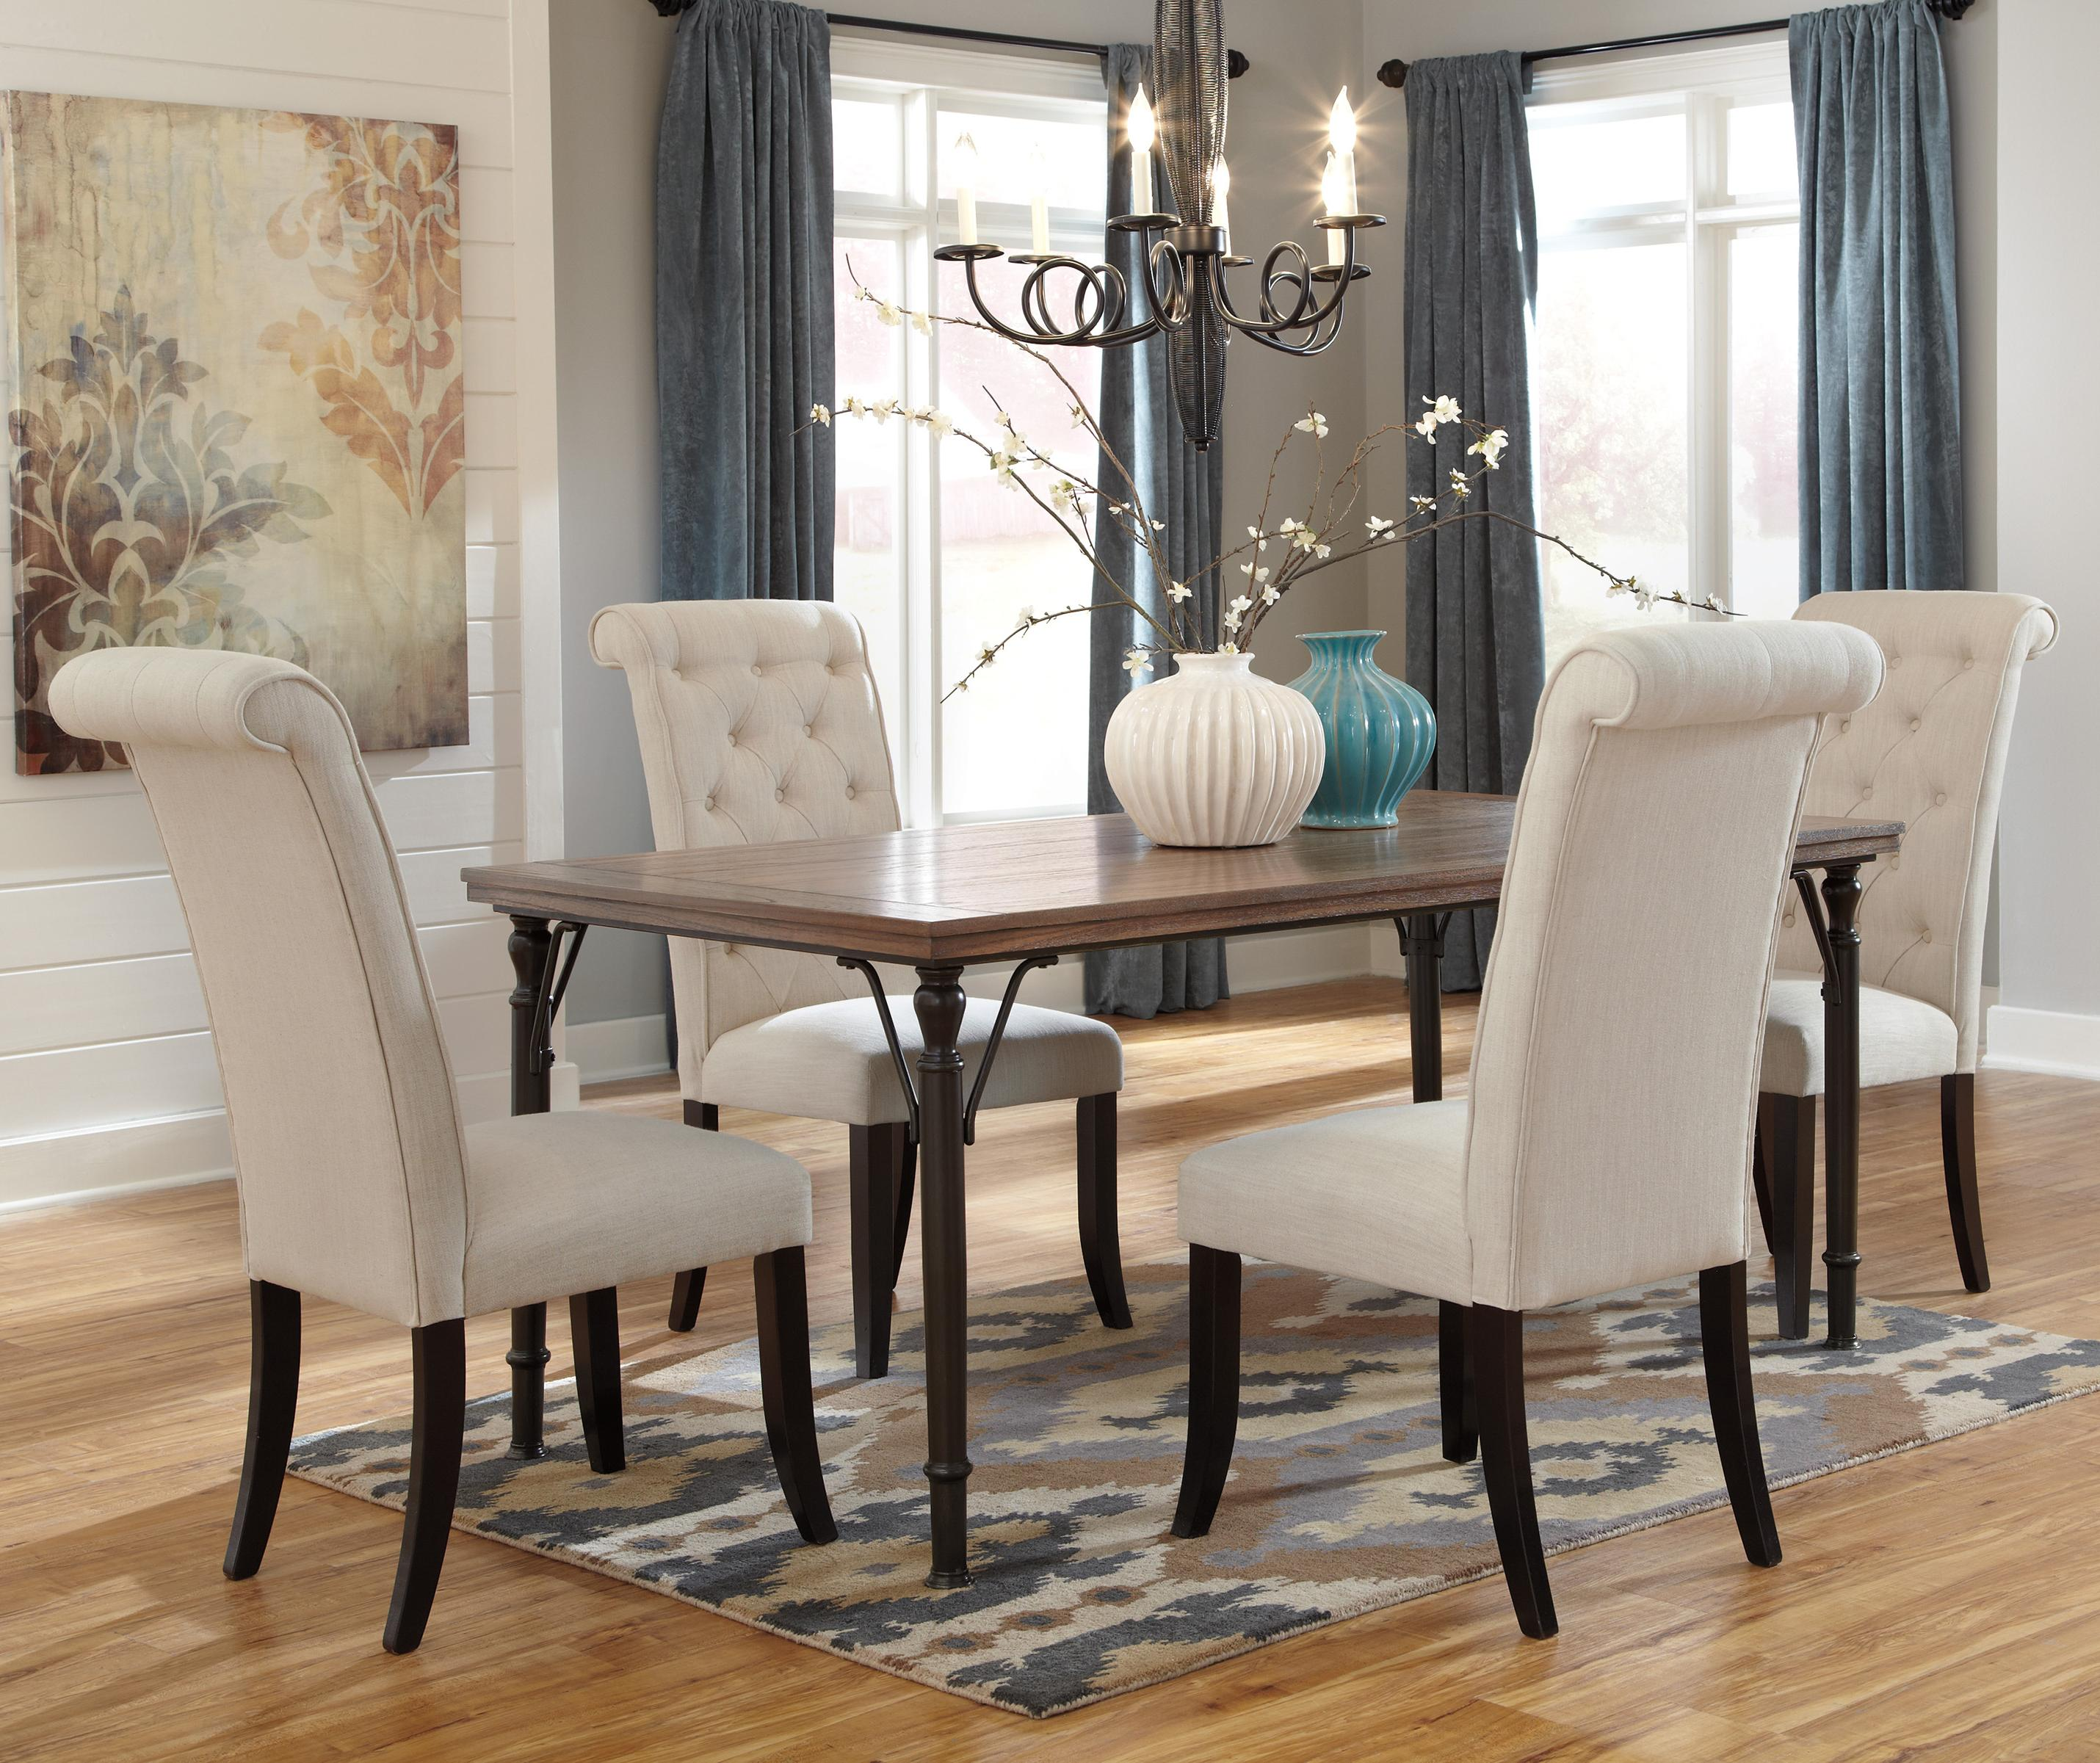 Ashley signature design tripton 5 piece rectangular dining for 5 piece dining room set with bench